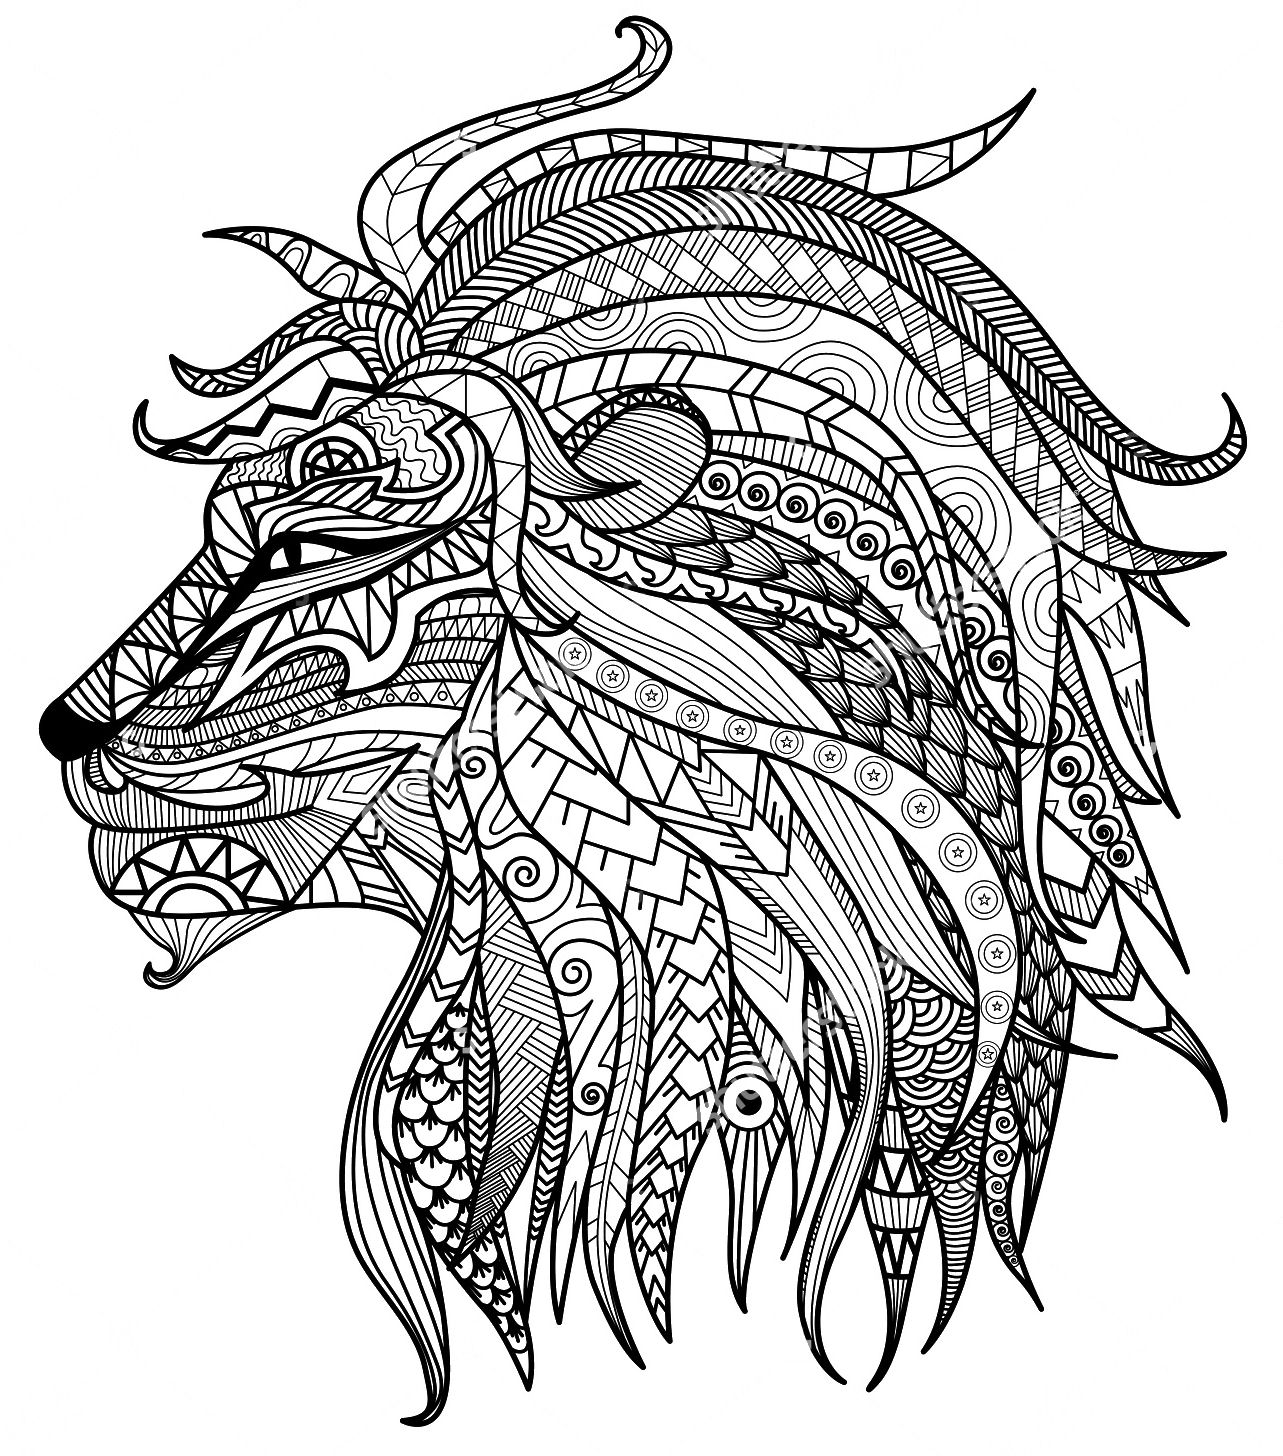 leo the lion coloring pages lovely cartoon lion coloring page free printable pages the coloring leo lion